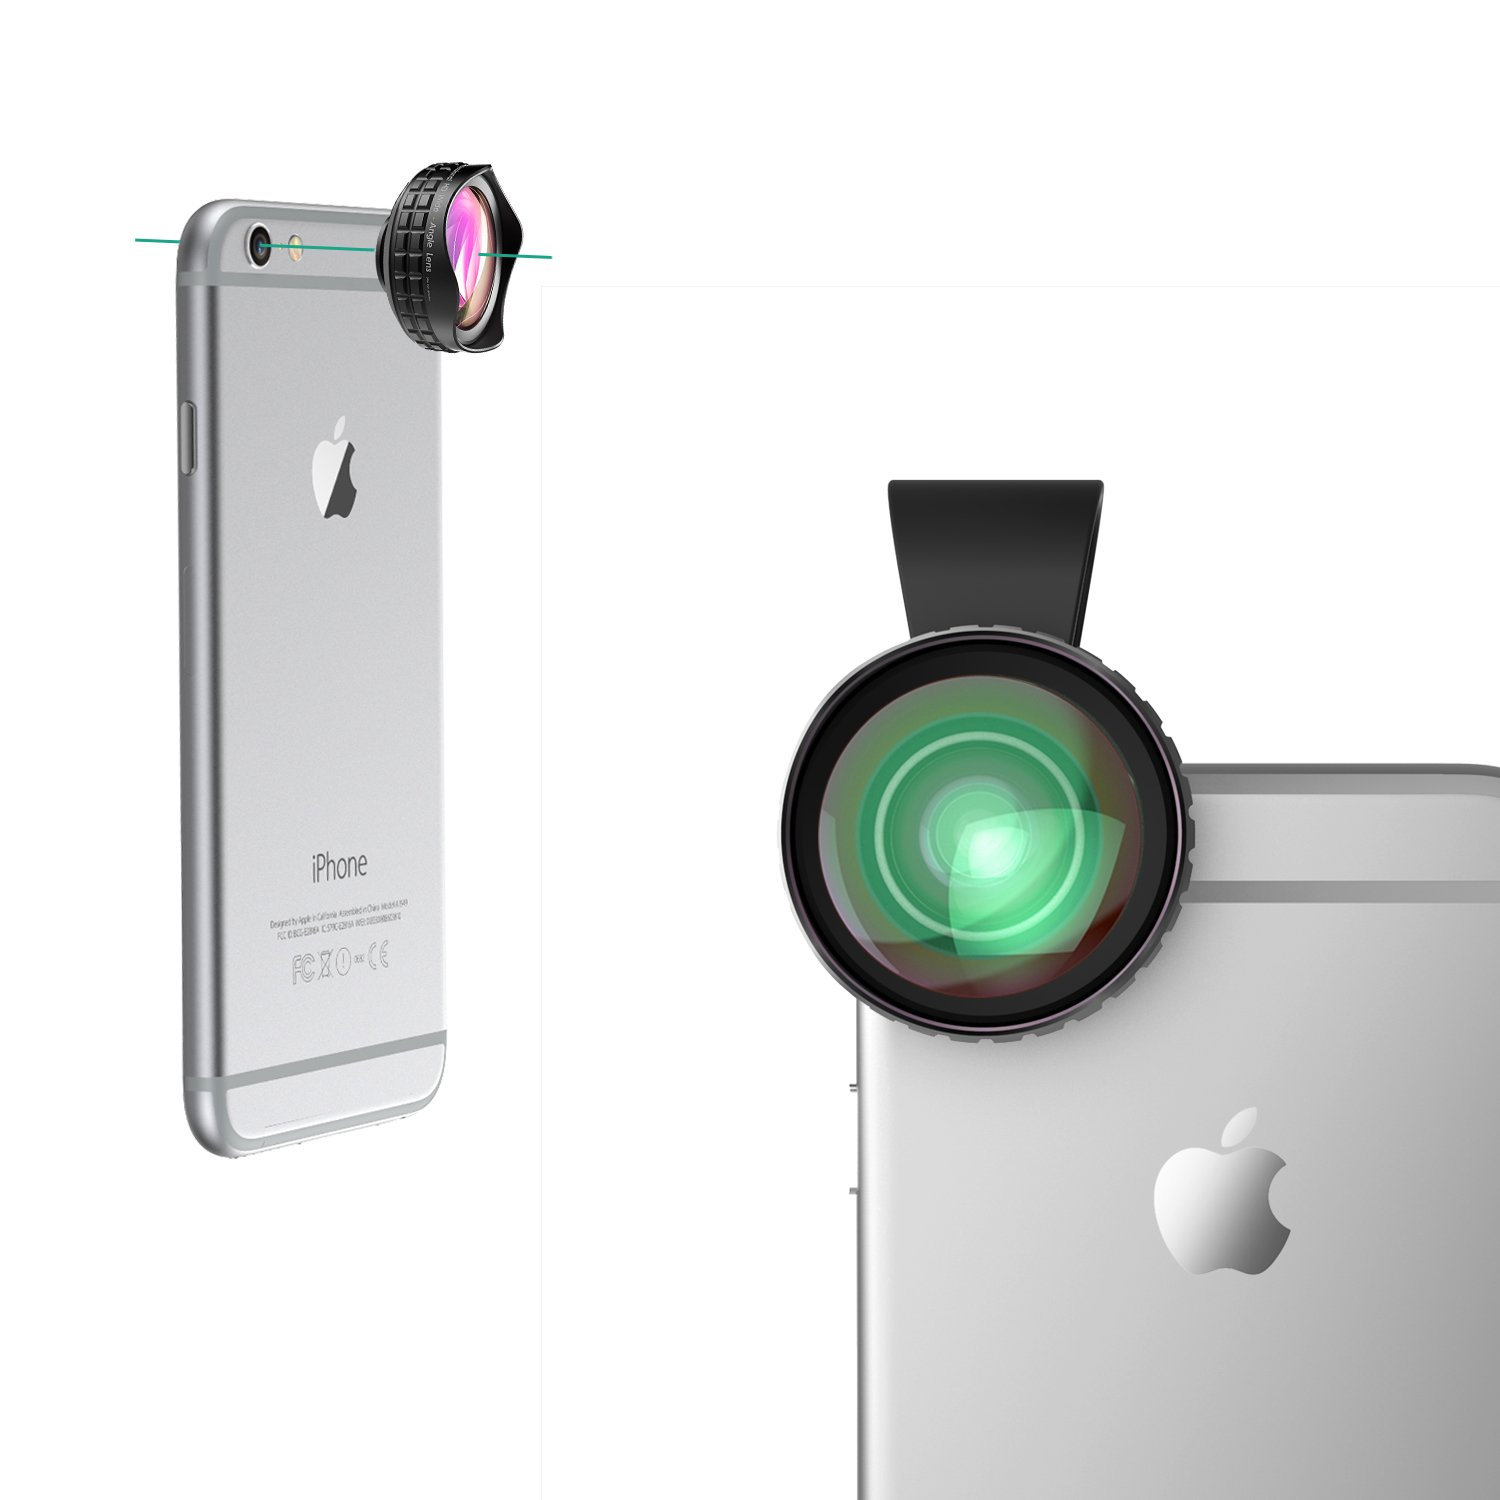 Camera Android Phone Camera Lens amazon com aukey ora iphone lens 0 63x wide angle clip on cell phone camera lenses for samsung android smartpho